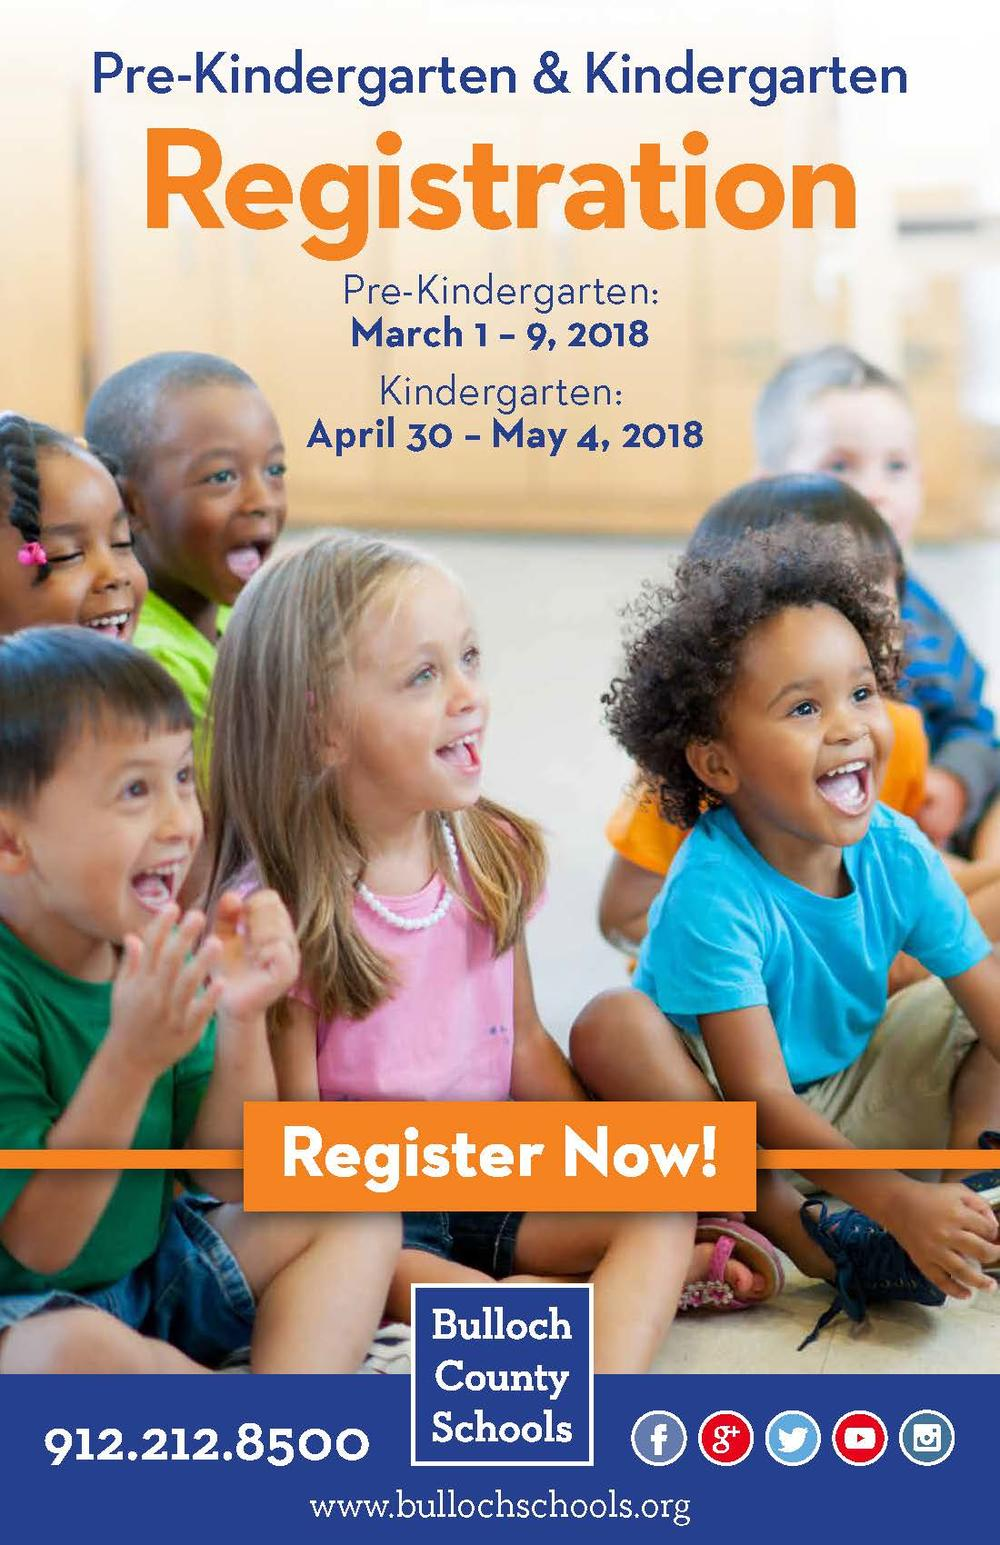 Prekindergarten and Kindergarten Registration Poster